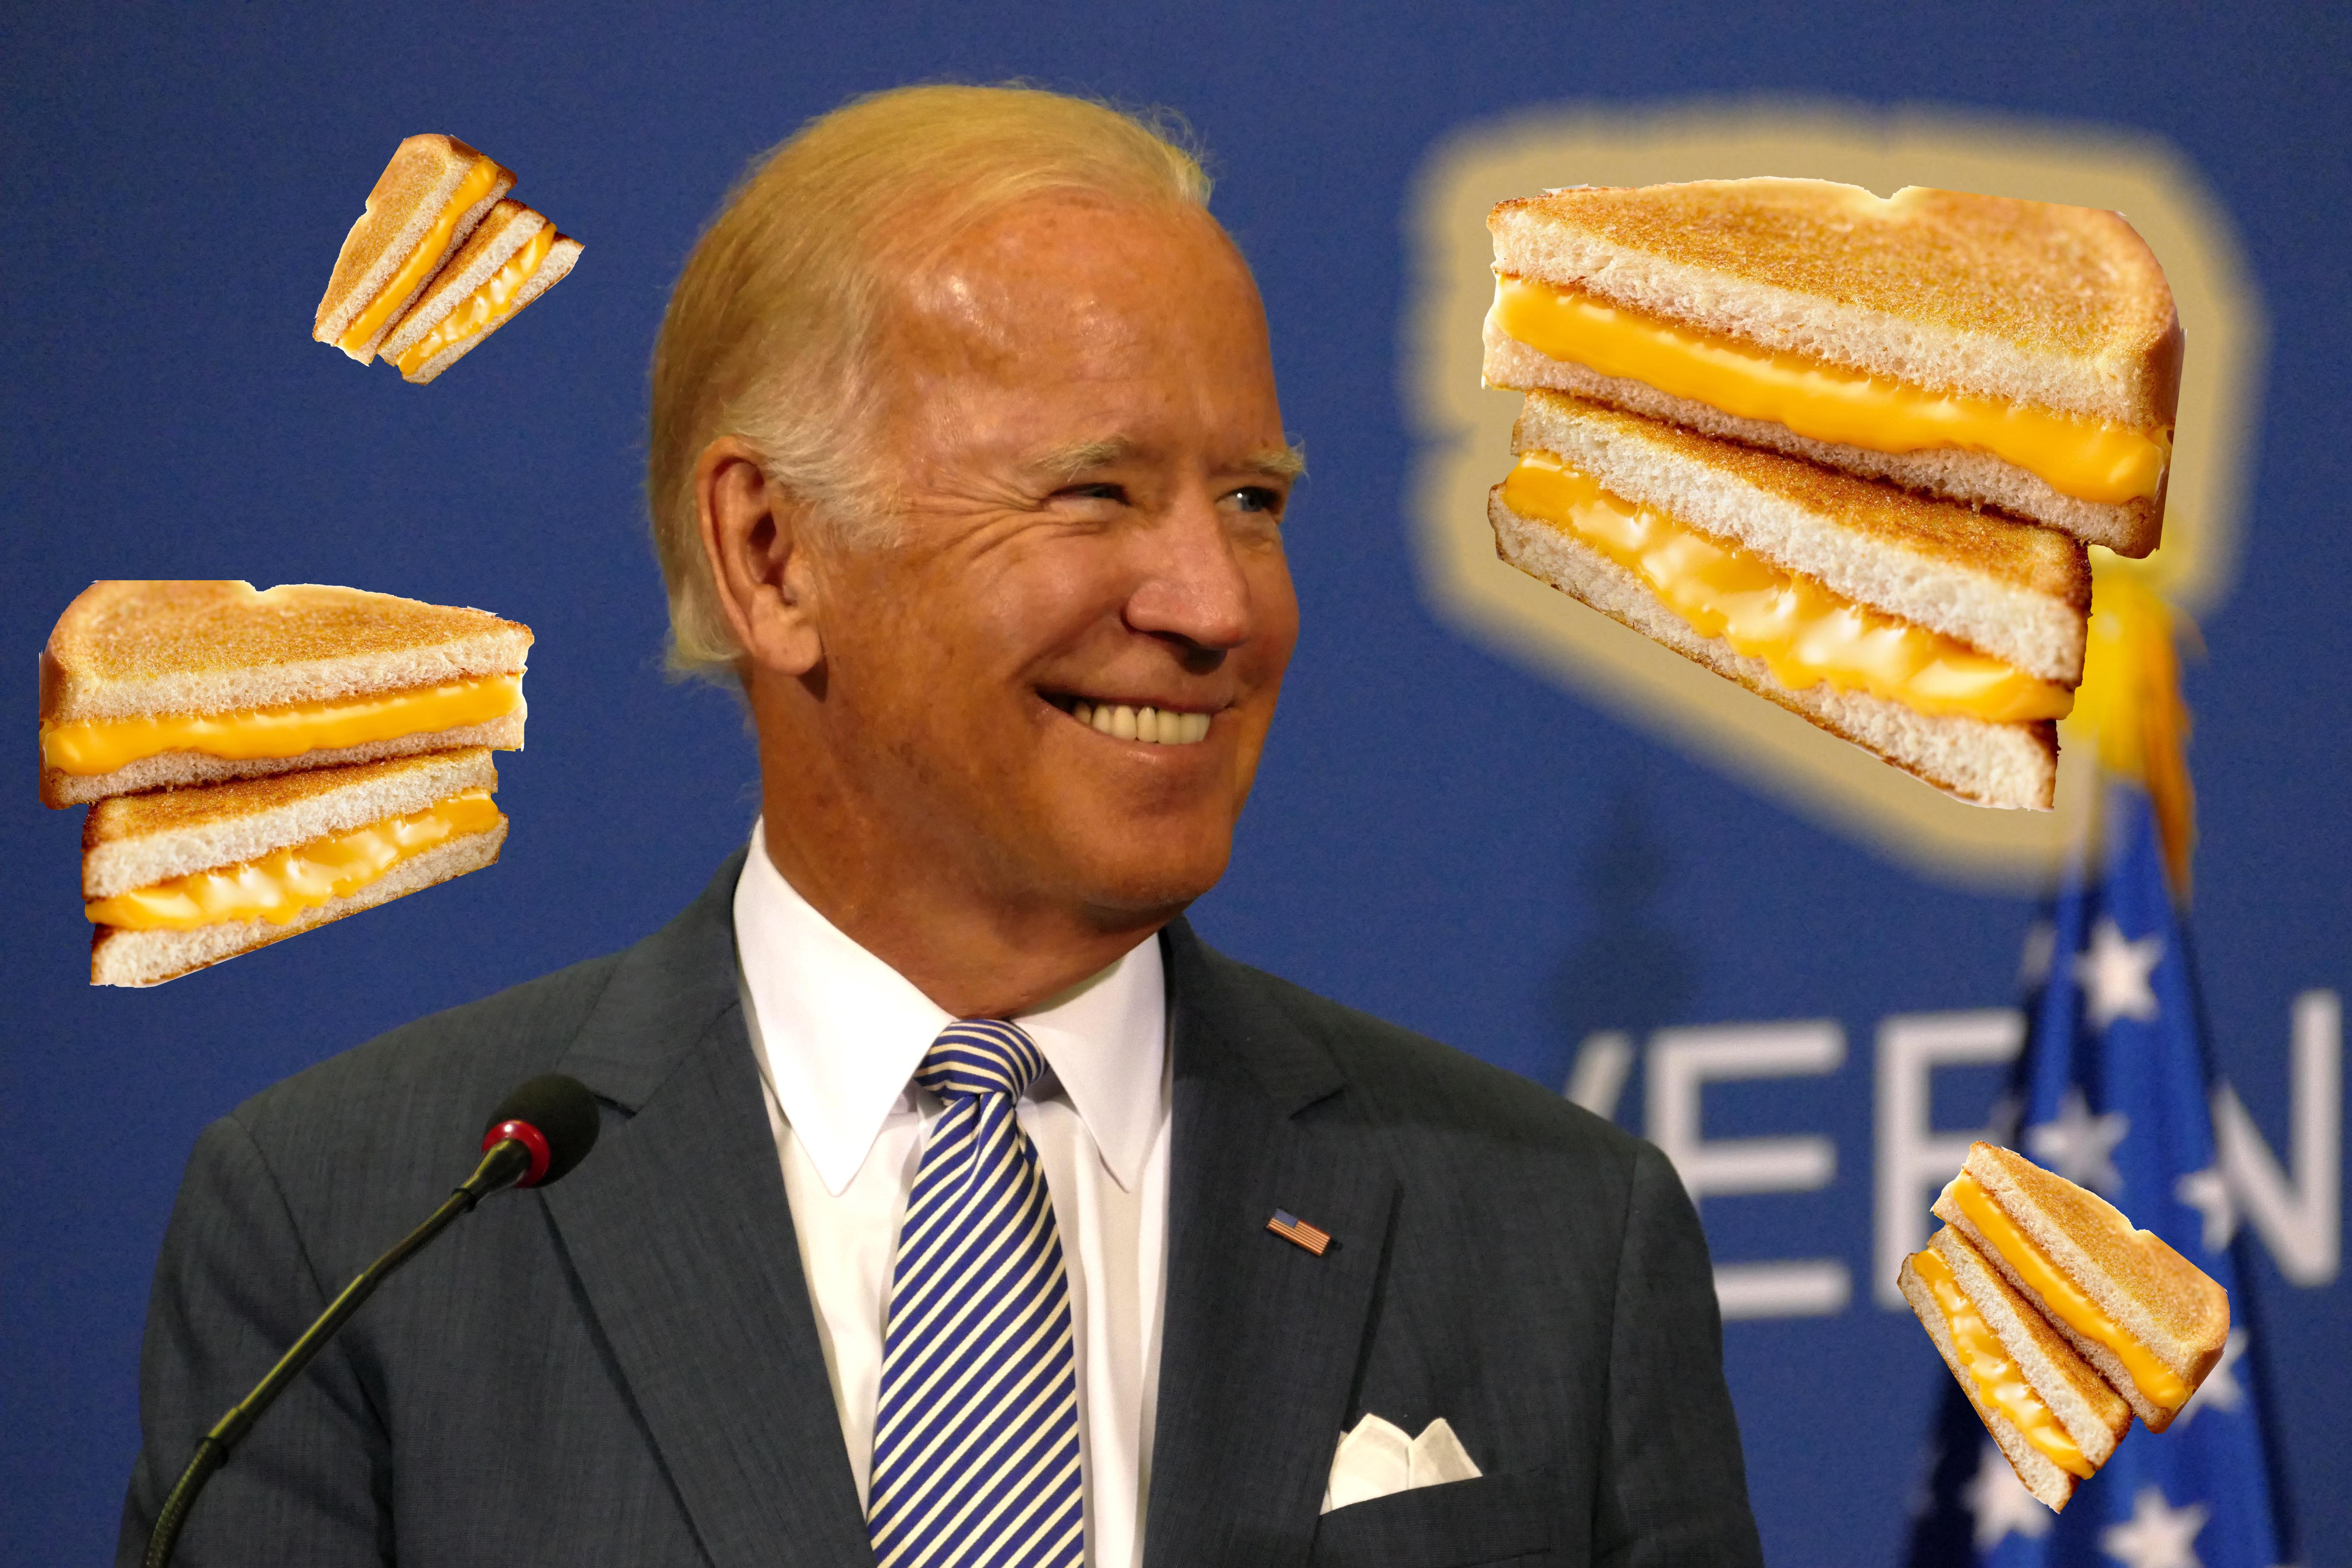 Joe Biden surrounded by grilled cheese